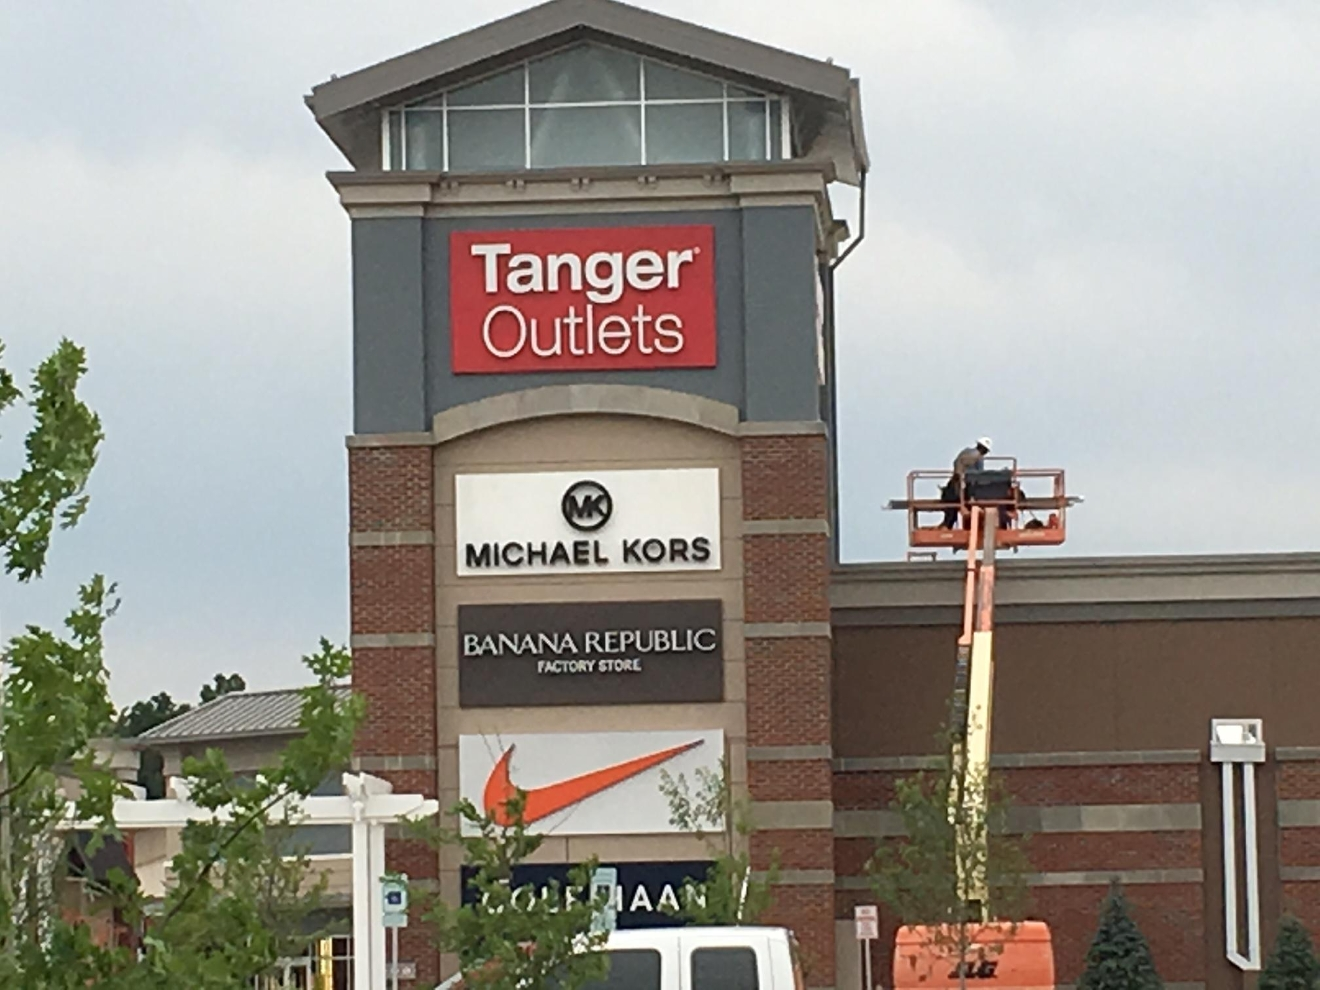 Tanger outlets will open thanksgiving stay open more than for Is waffle house open on thanksgiving